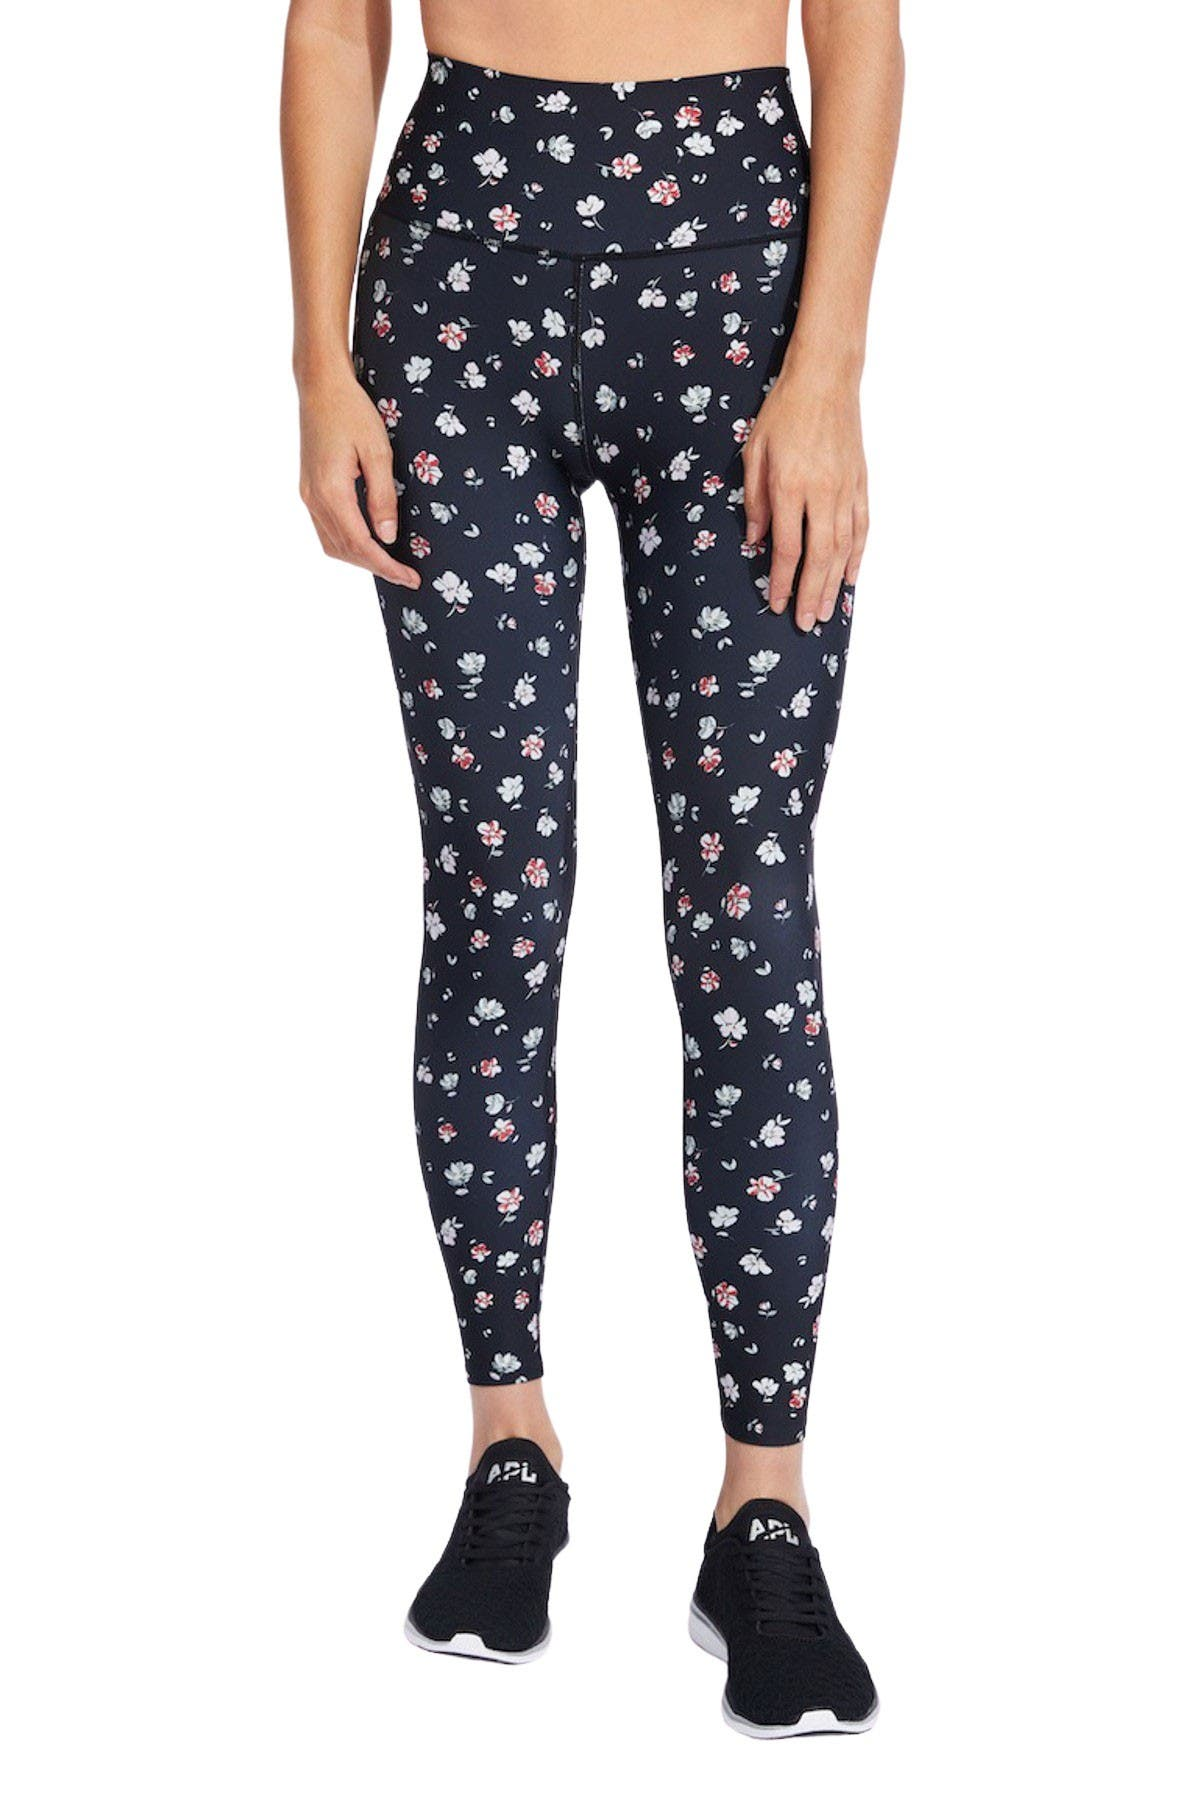 Image of SoulCycle Foldover Waistband Tights